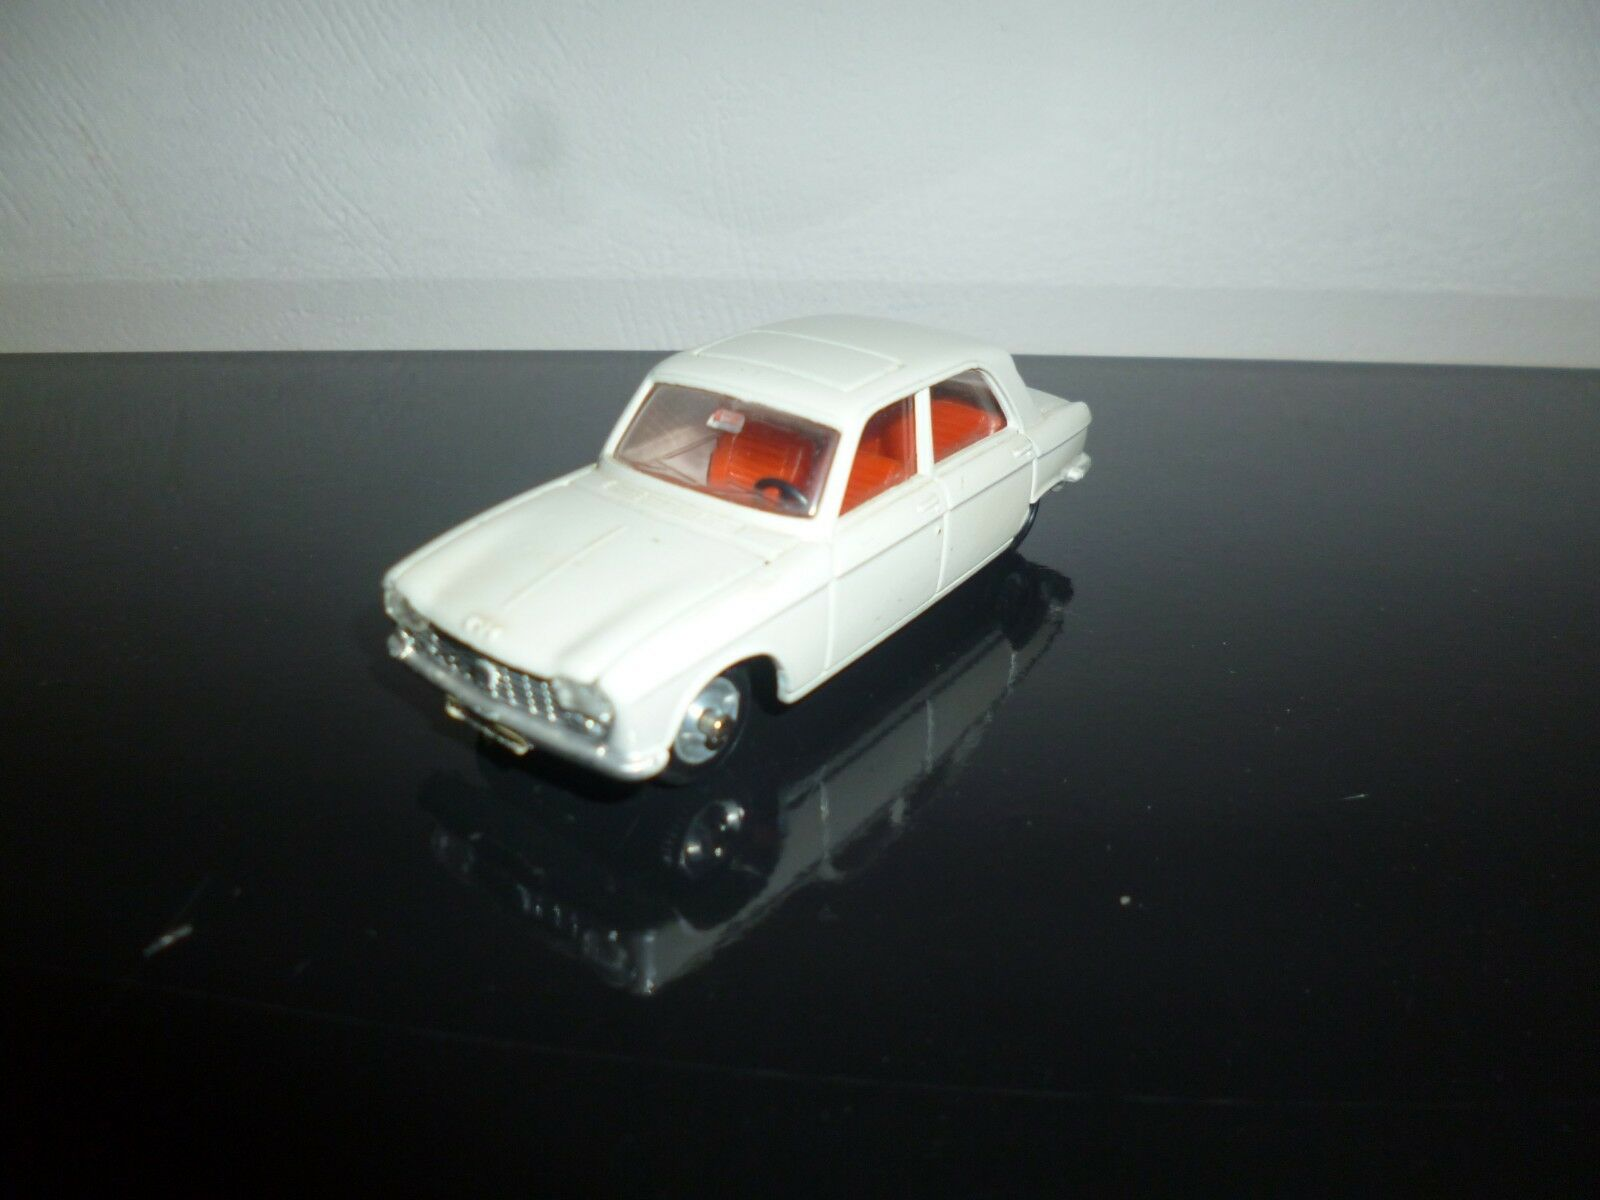 Authentique PEUGEOT 204 DINKY TOYS 510 fabrication de 1965 made in FRANCE